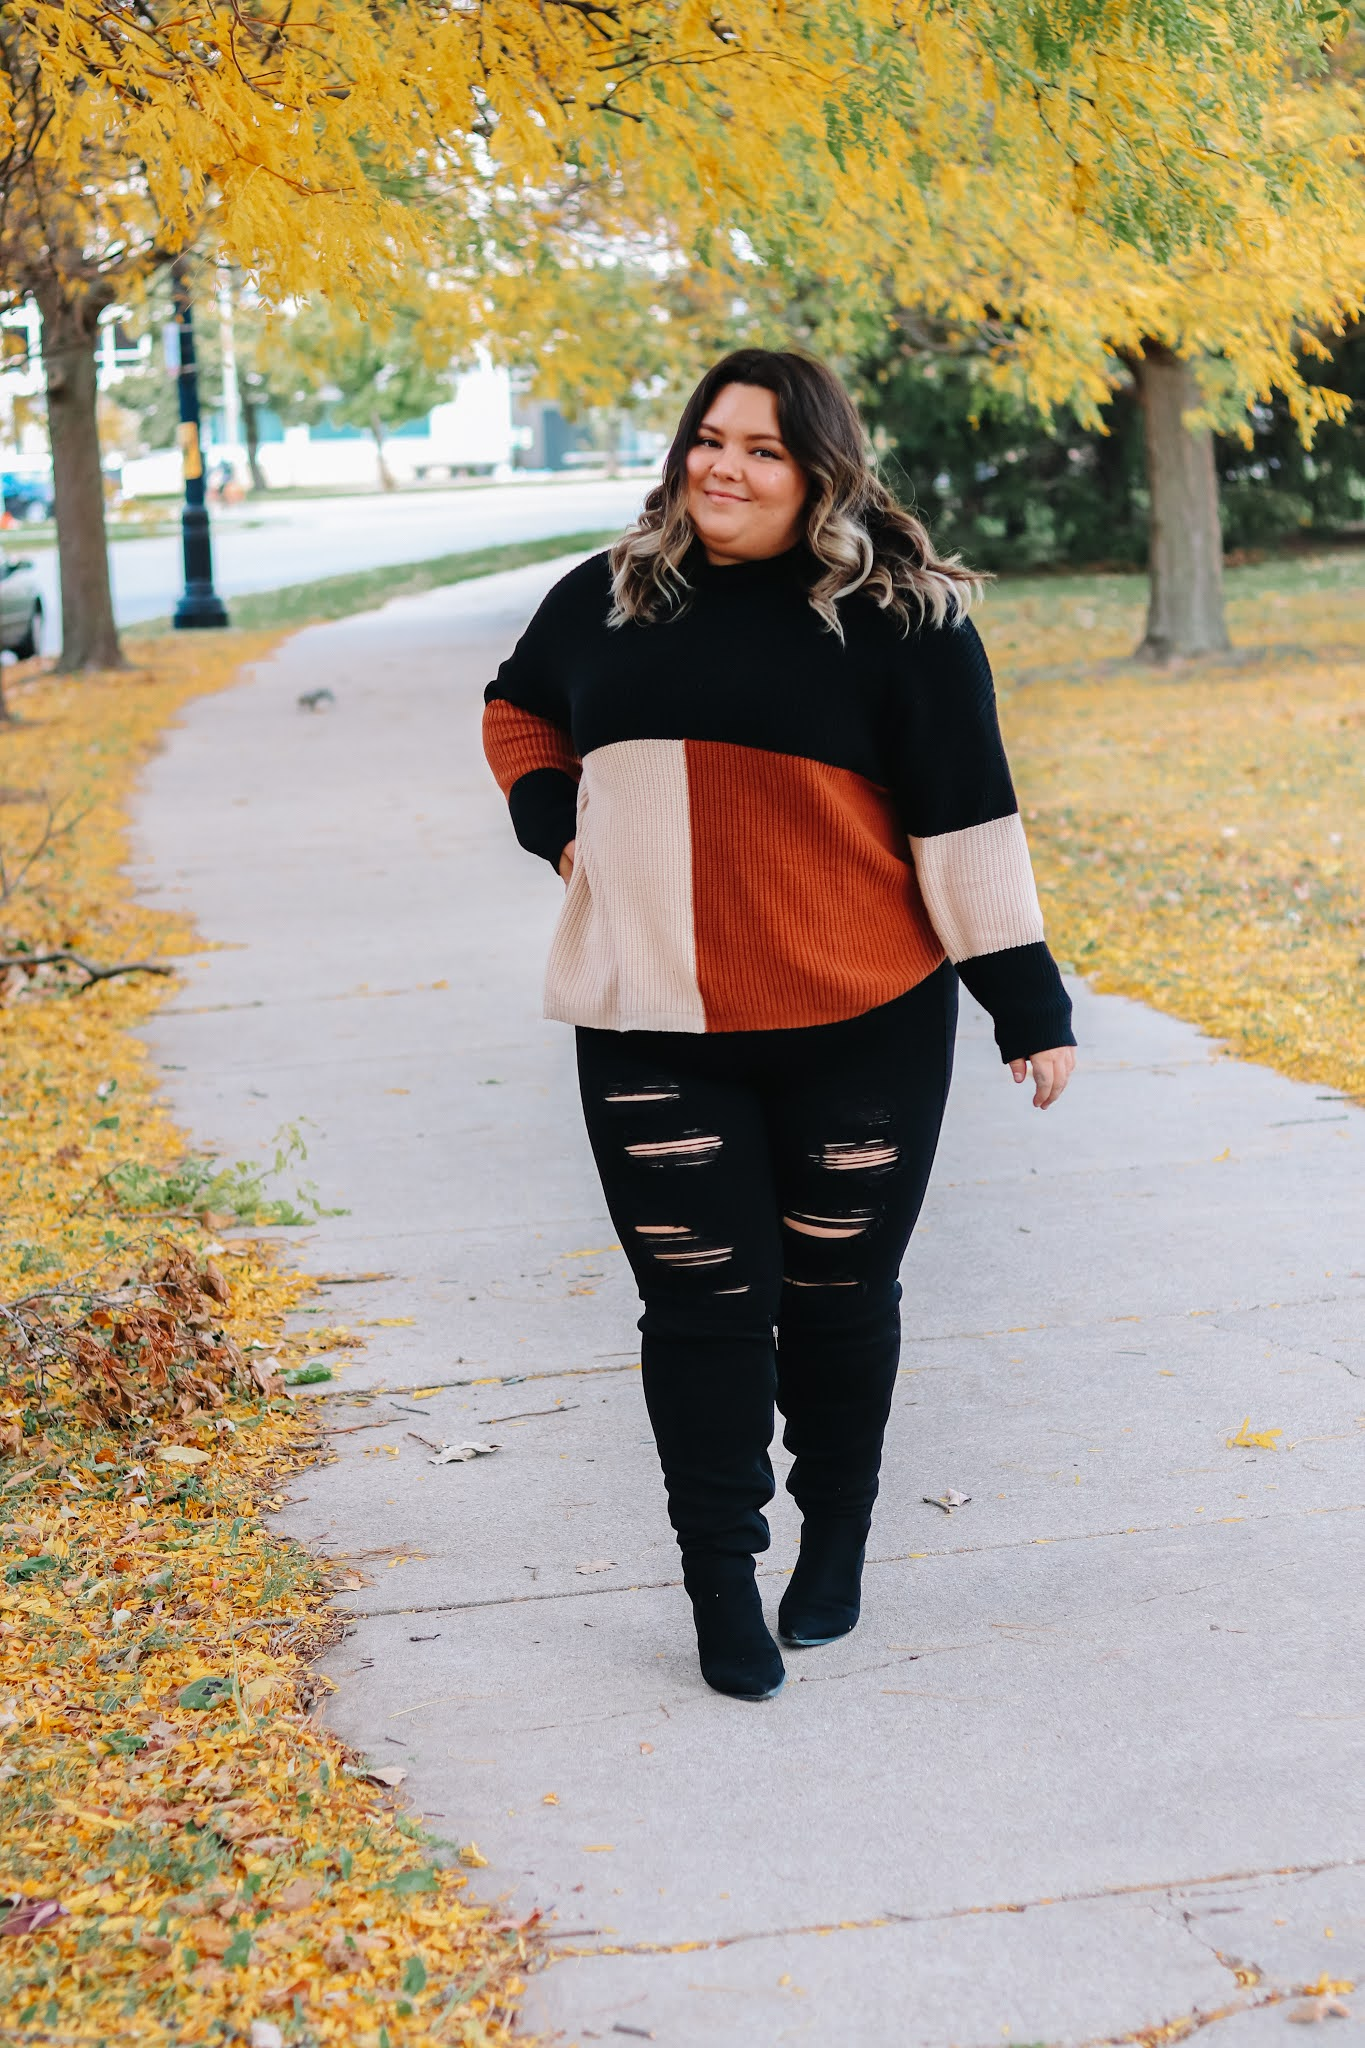 Chicago Plus Size Petite Fashion Blogger Natalie in the City knee high wide calf boots fall 2020 outfits